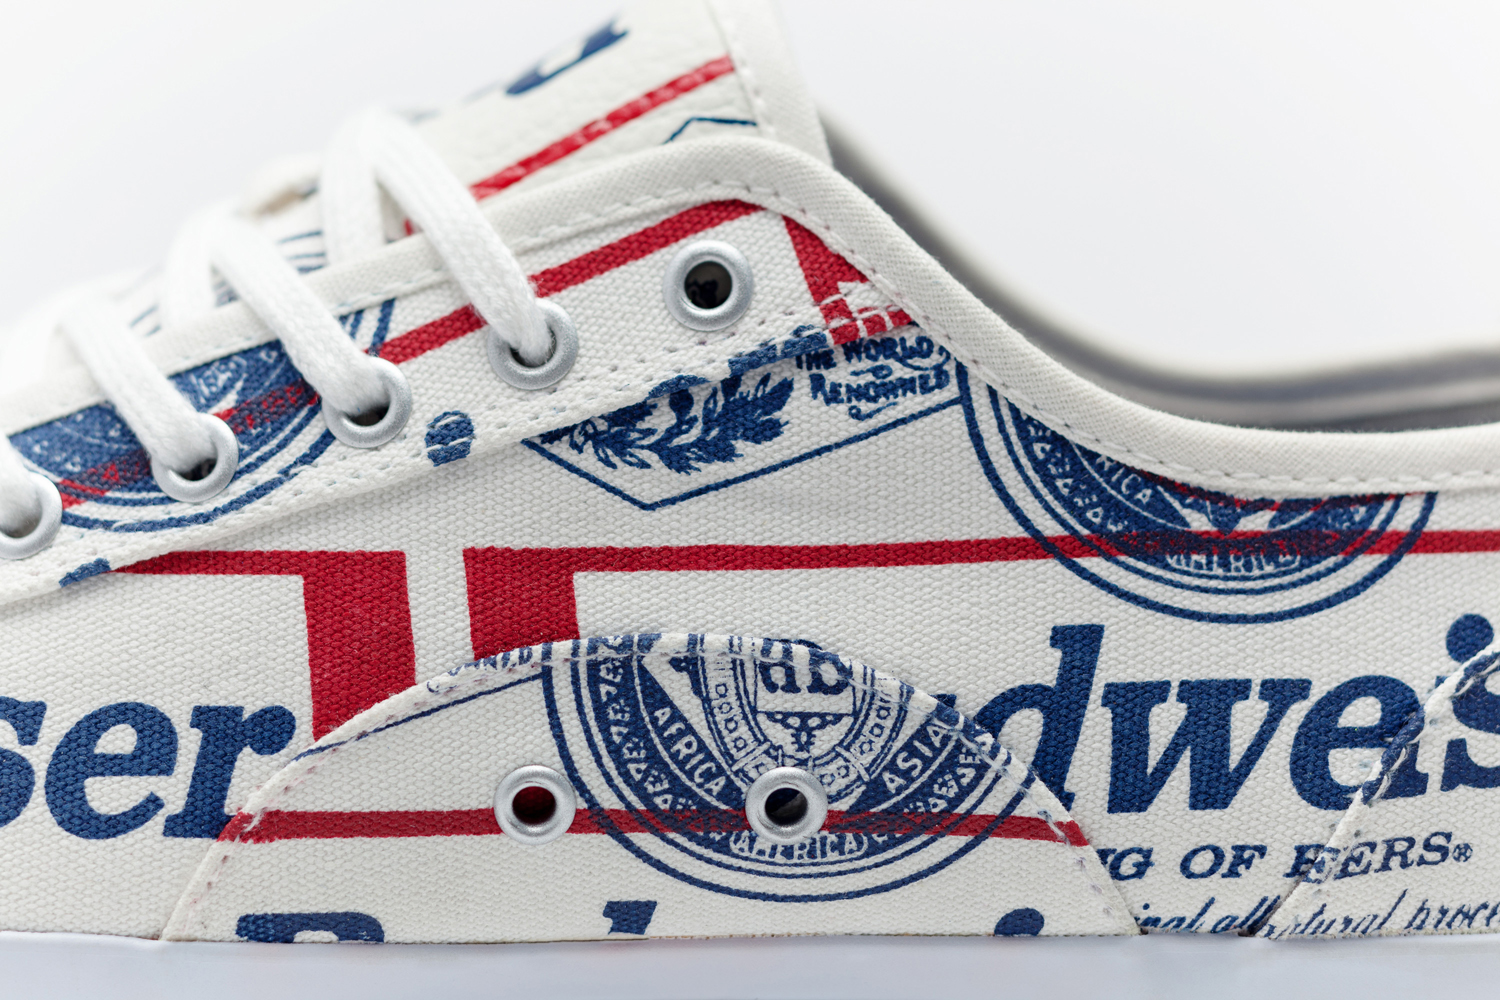 Budweiser Greats Made in America Sneakers 02